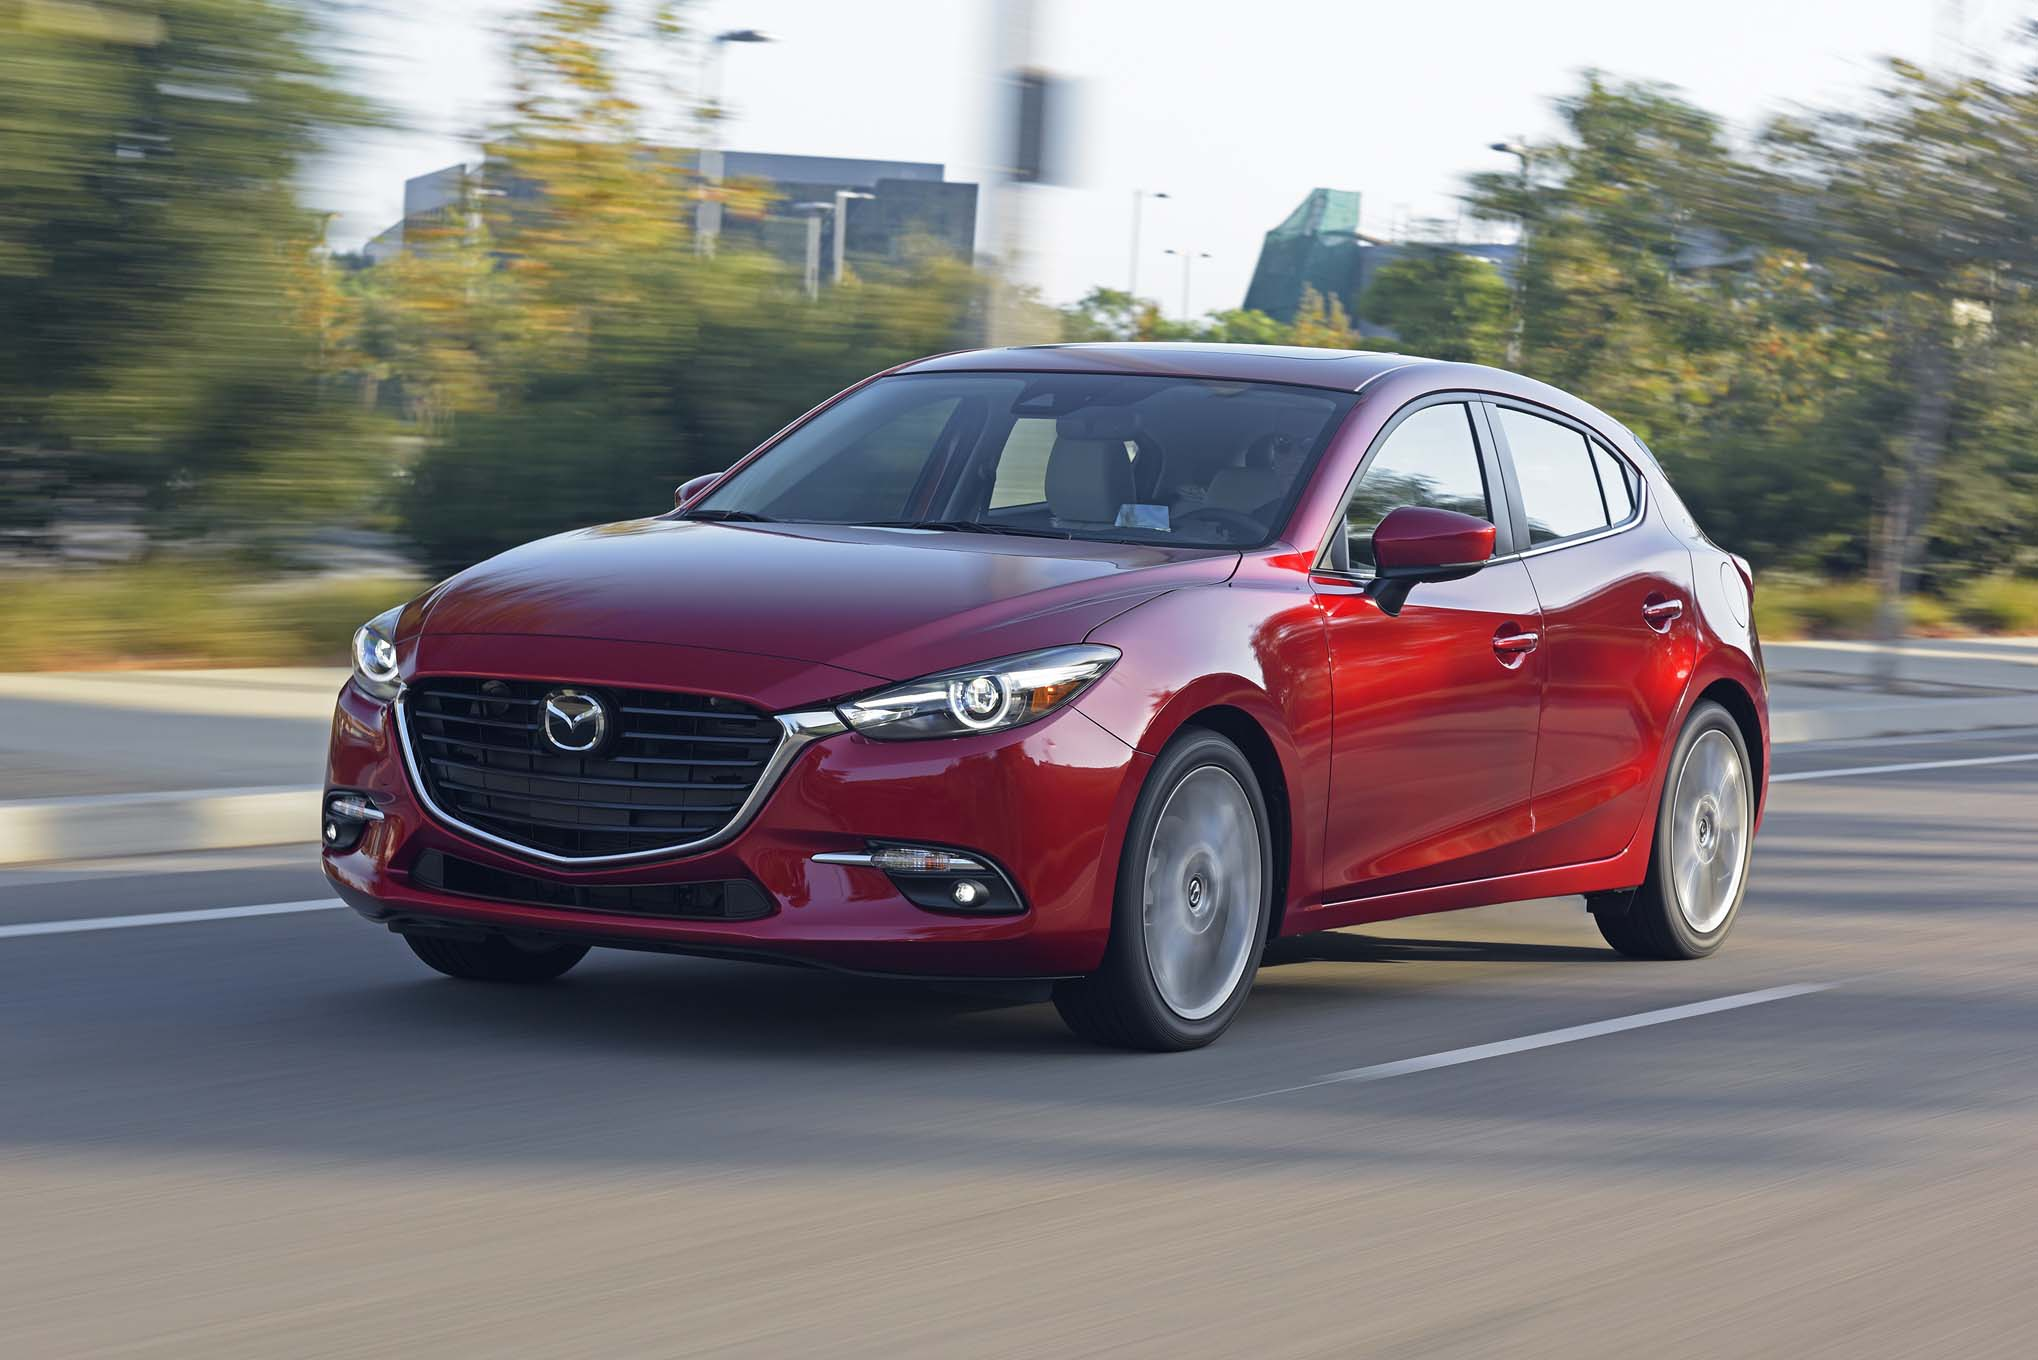 2017 Mazda3 Front Three Quarter In Motion 05 1